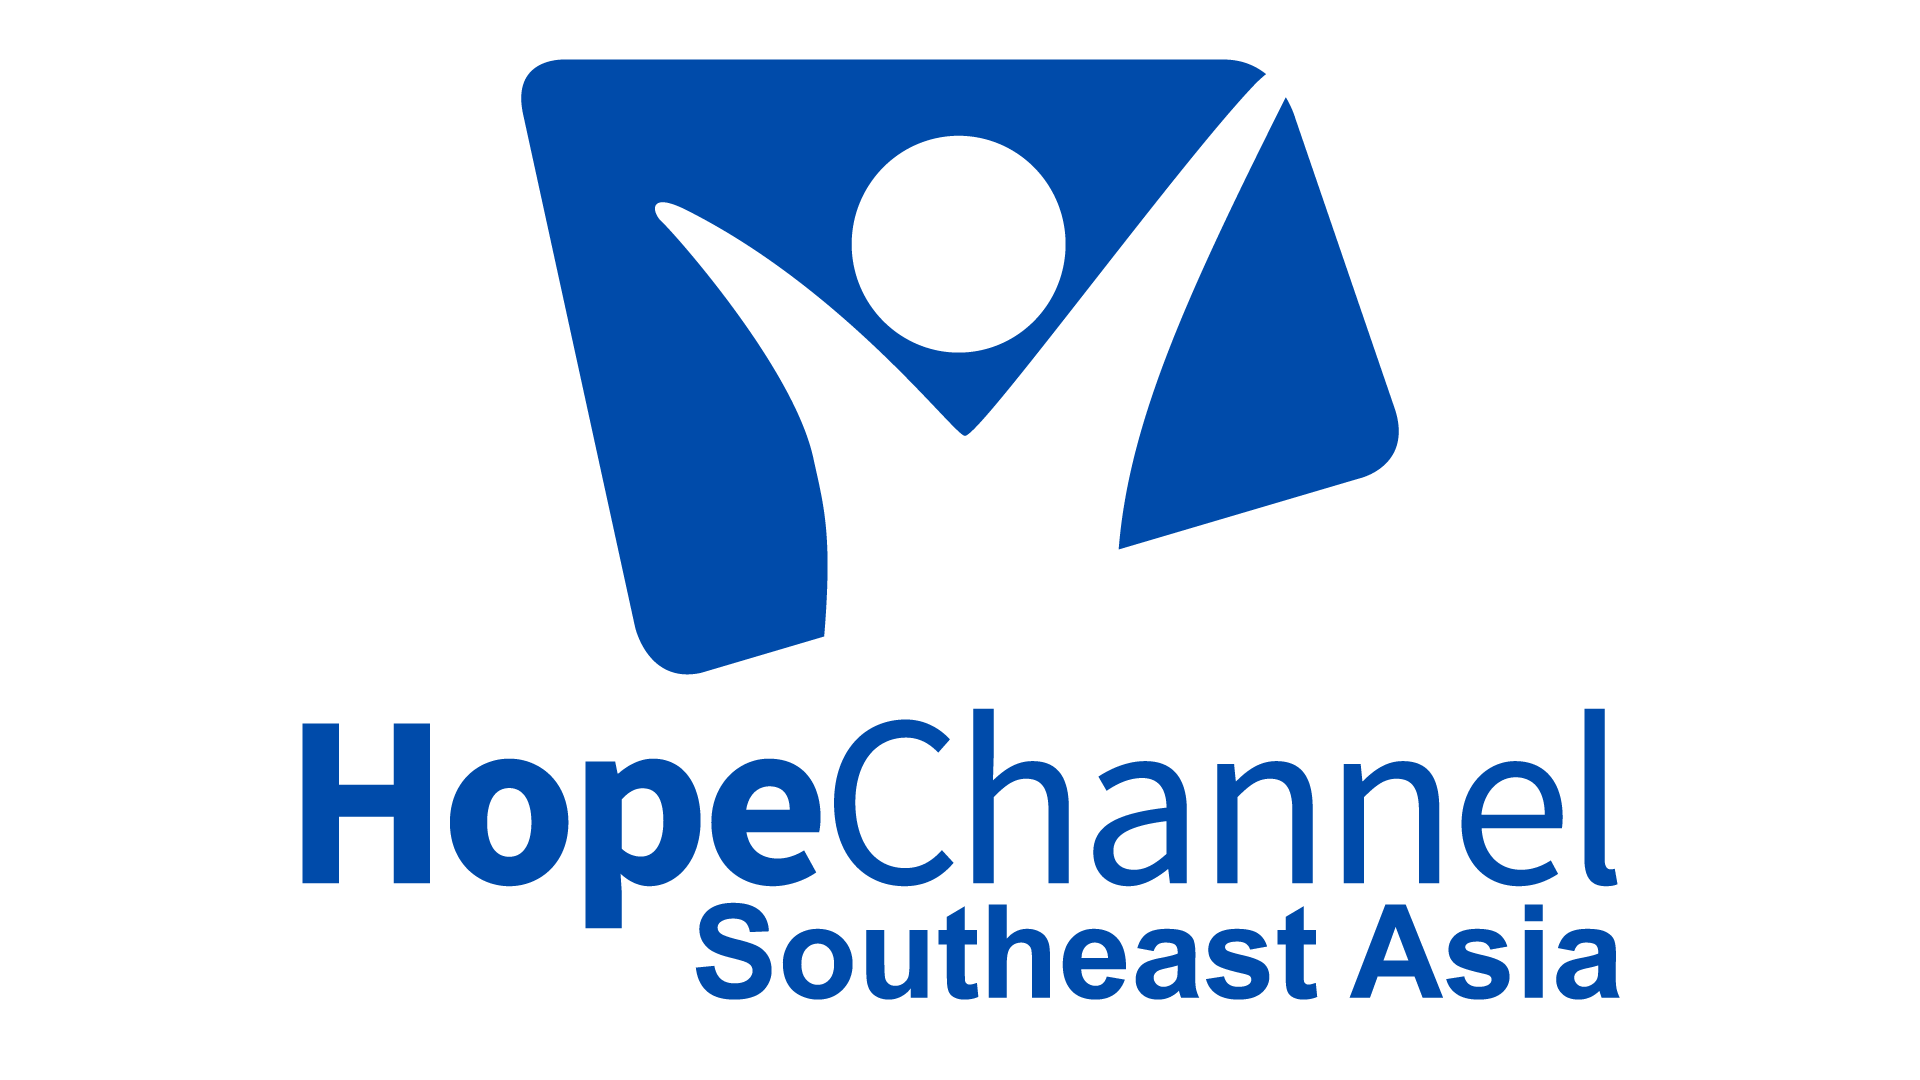 Hope Channel Southeast Asia Live TV, Online